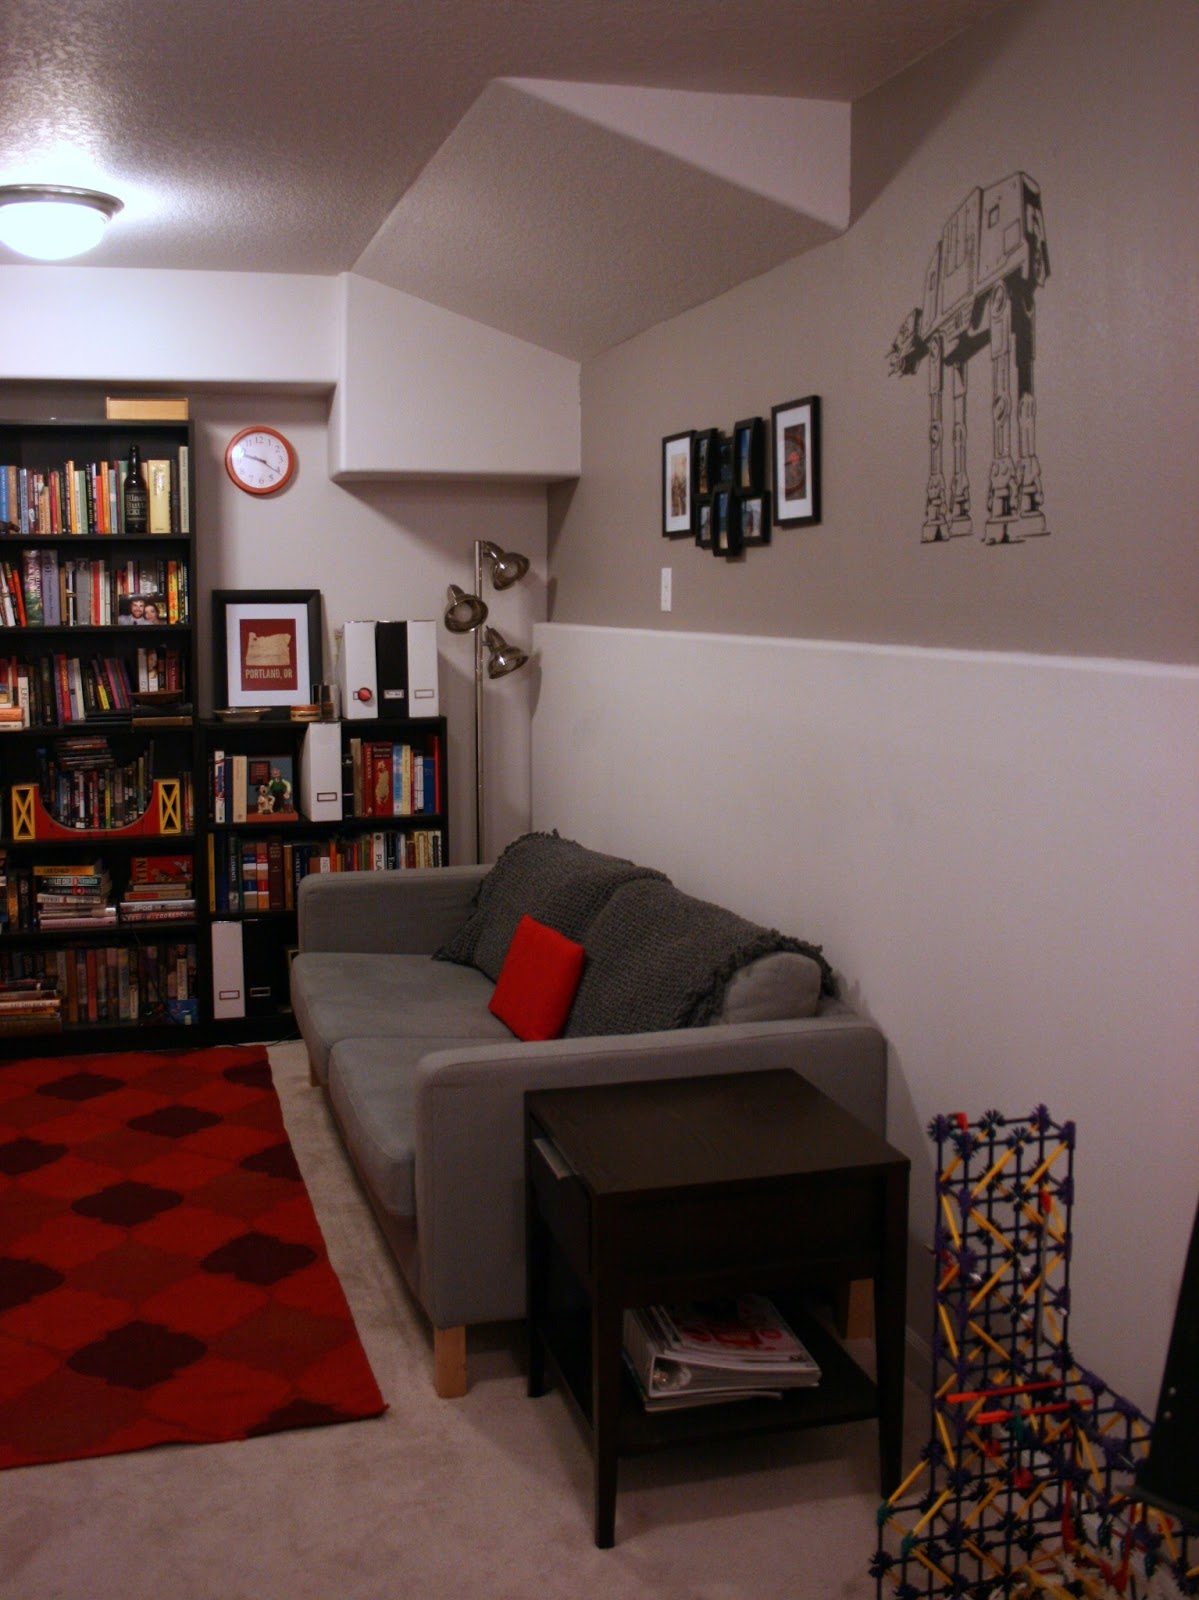 Basement Game Room Designs: More House-painting... The Bonus Room Is Done! / Create